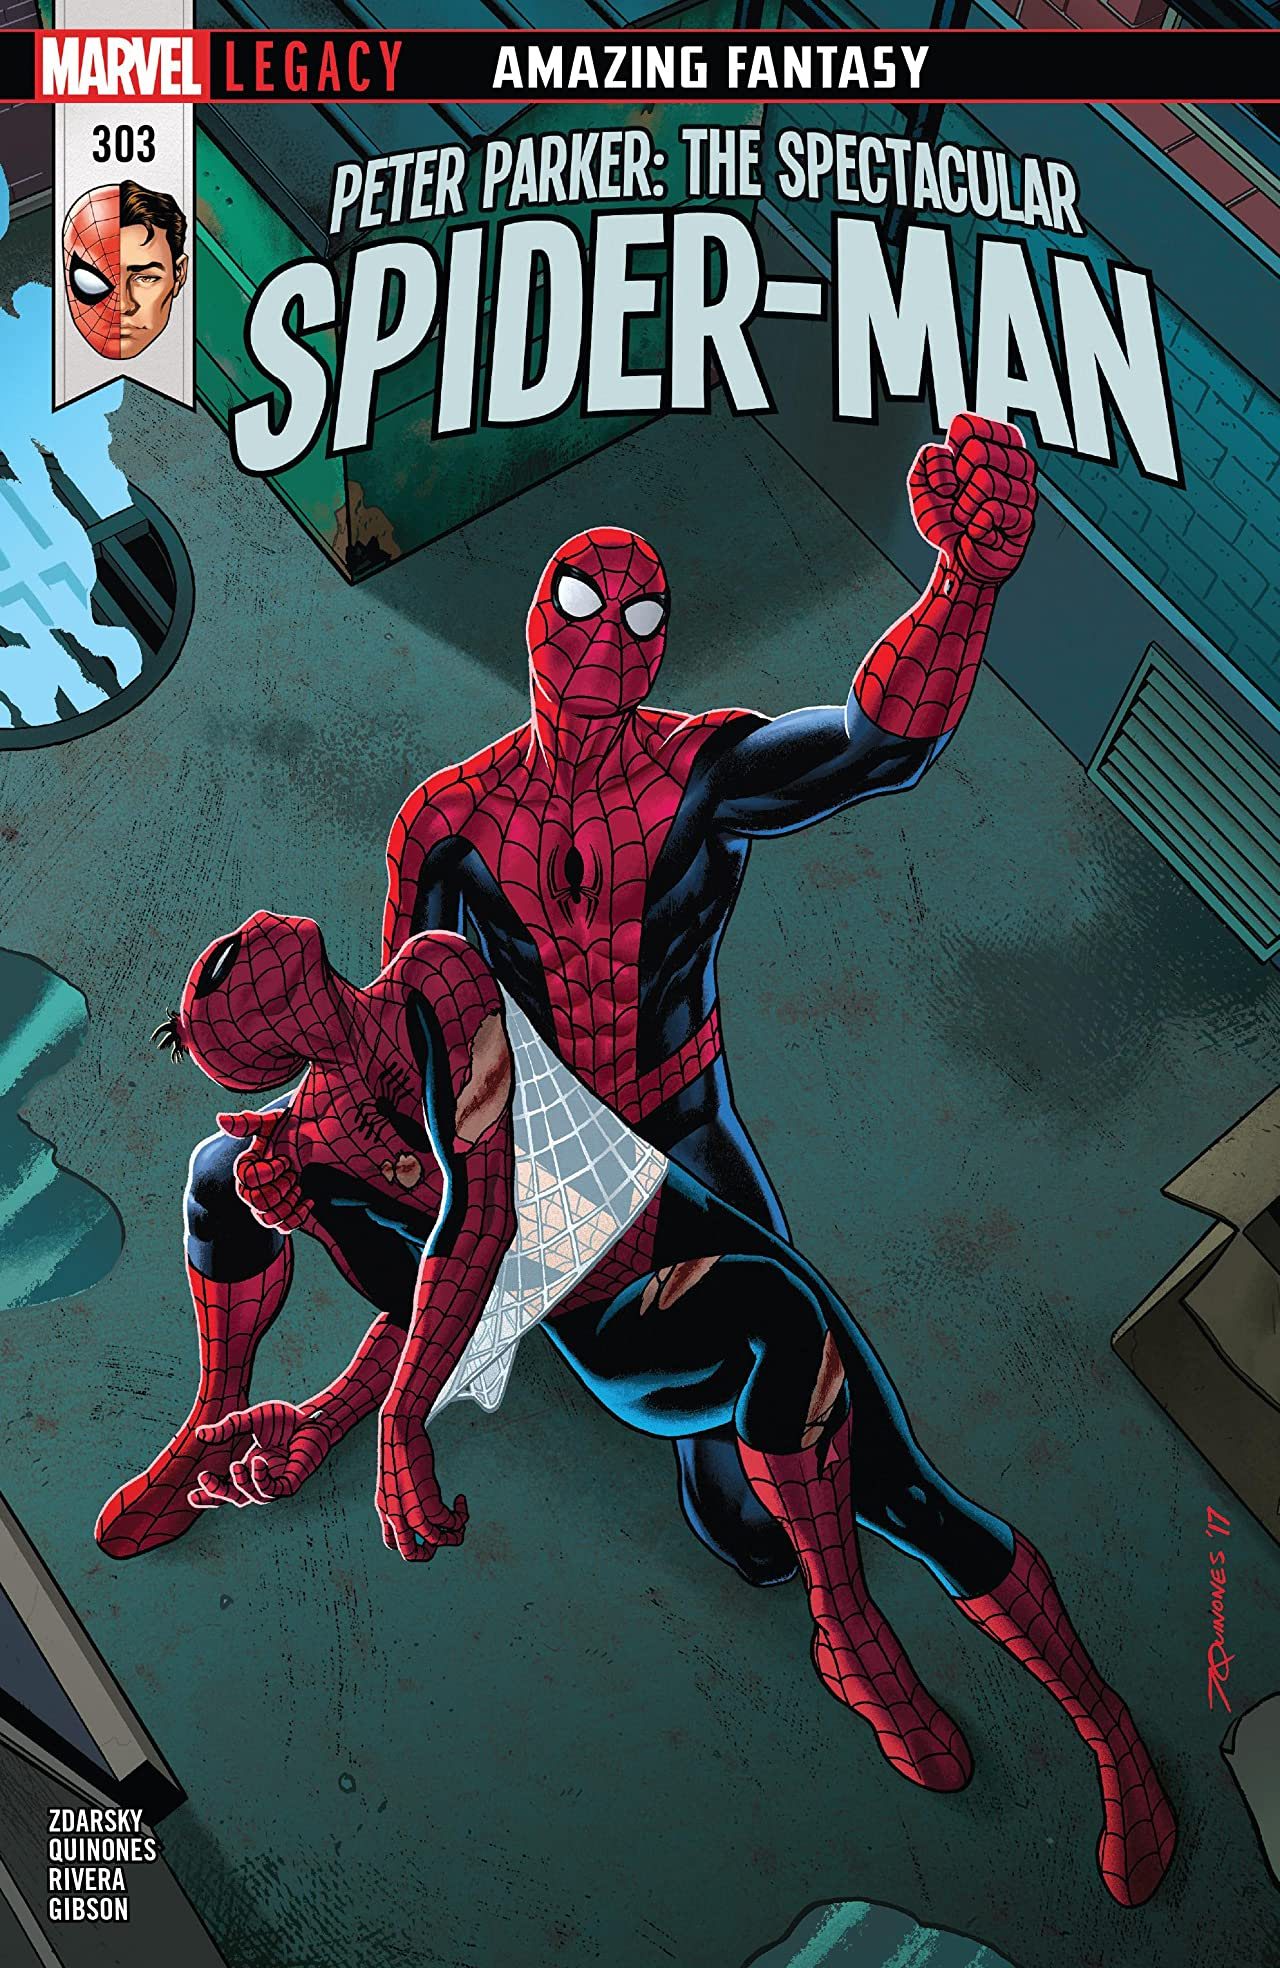 Peter Parker: The Spectacular Spider-Man (2017-) #303